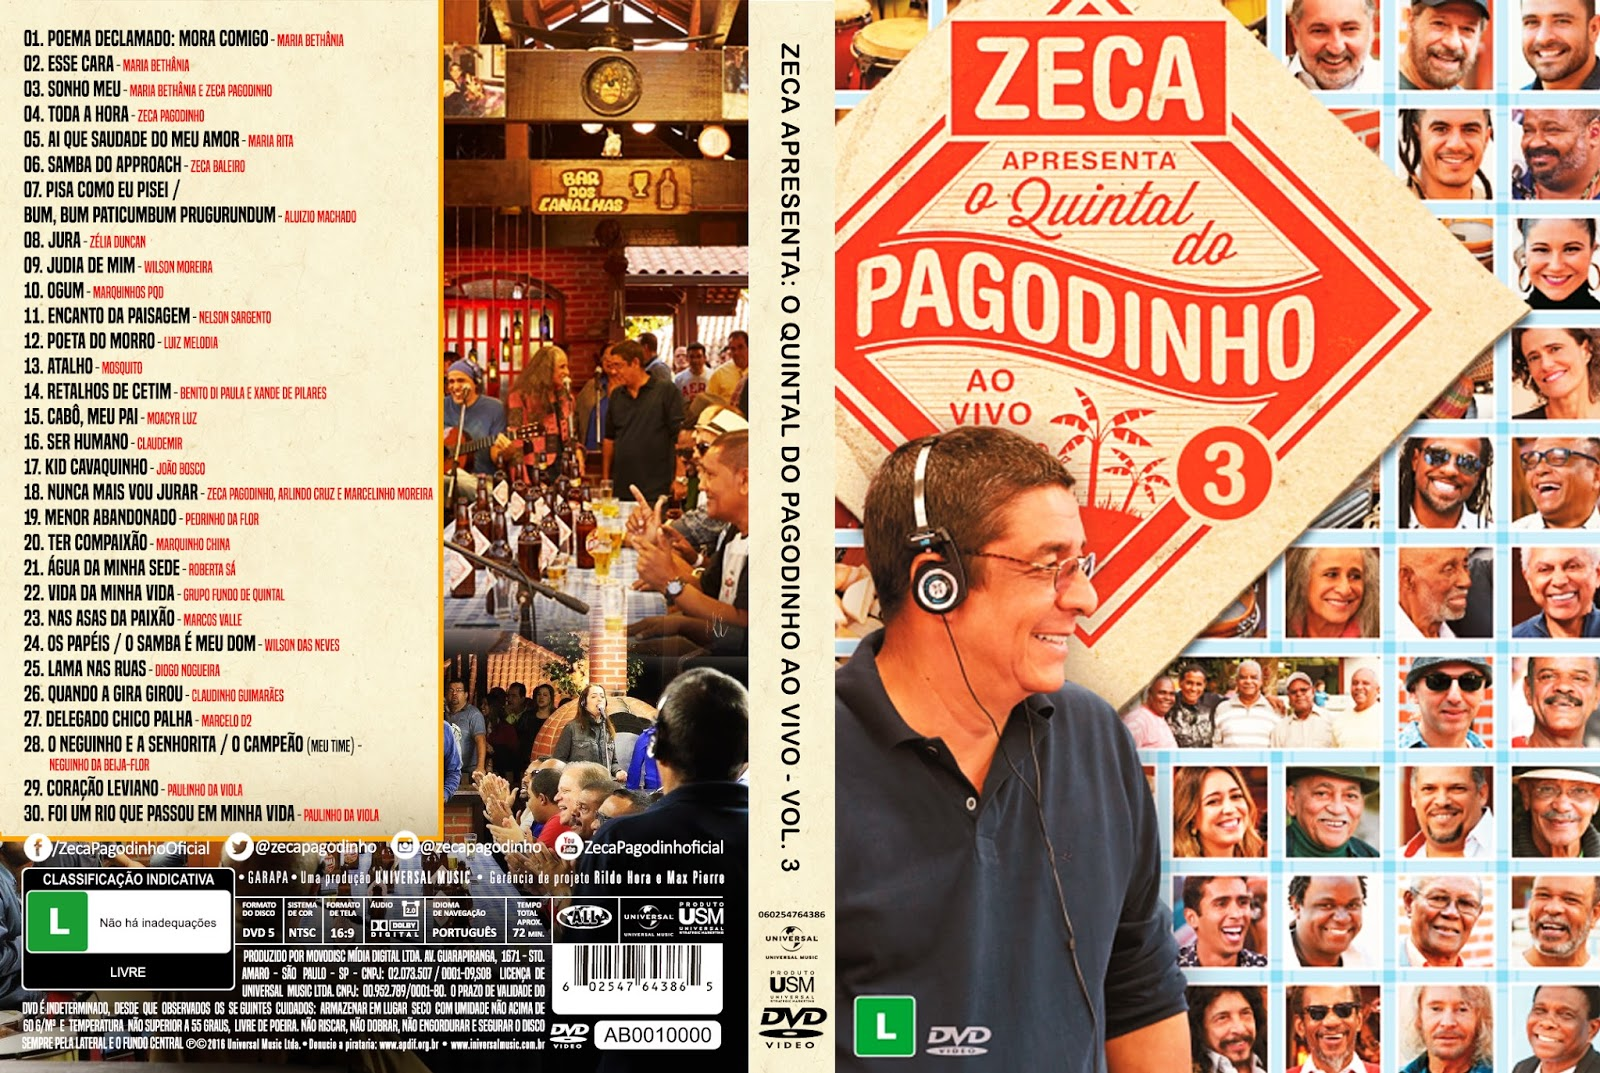 Download Quintal do Pagodinho ao Vivo Vol.3 DVDRip Download Quintal do Pagodinho ao Vivo Vol.3 DVDRip 2016 Quintal 2Bdo 2BPagodinho 2Bao 2BVivo 2BVol